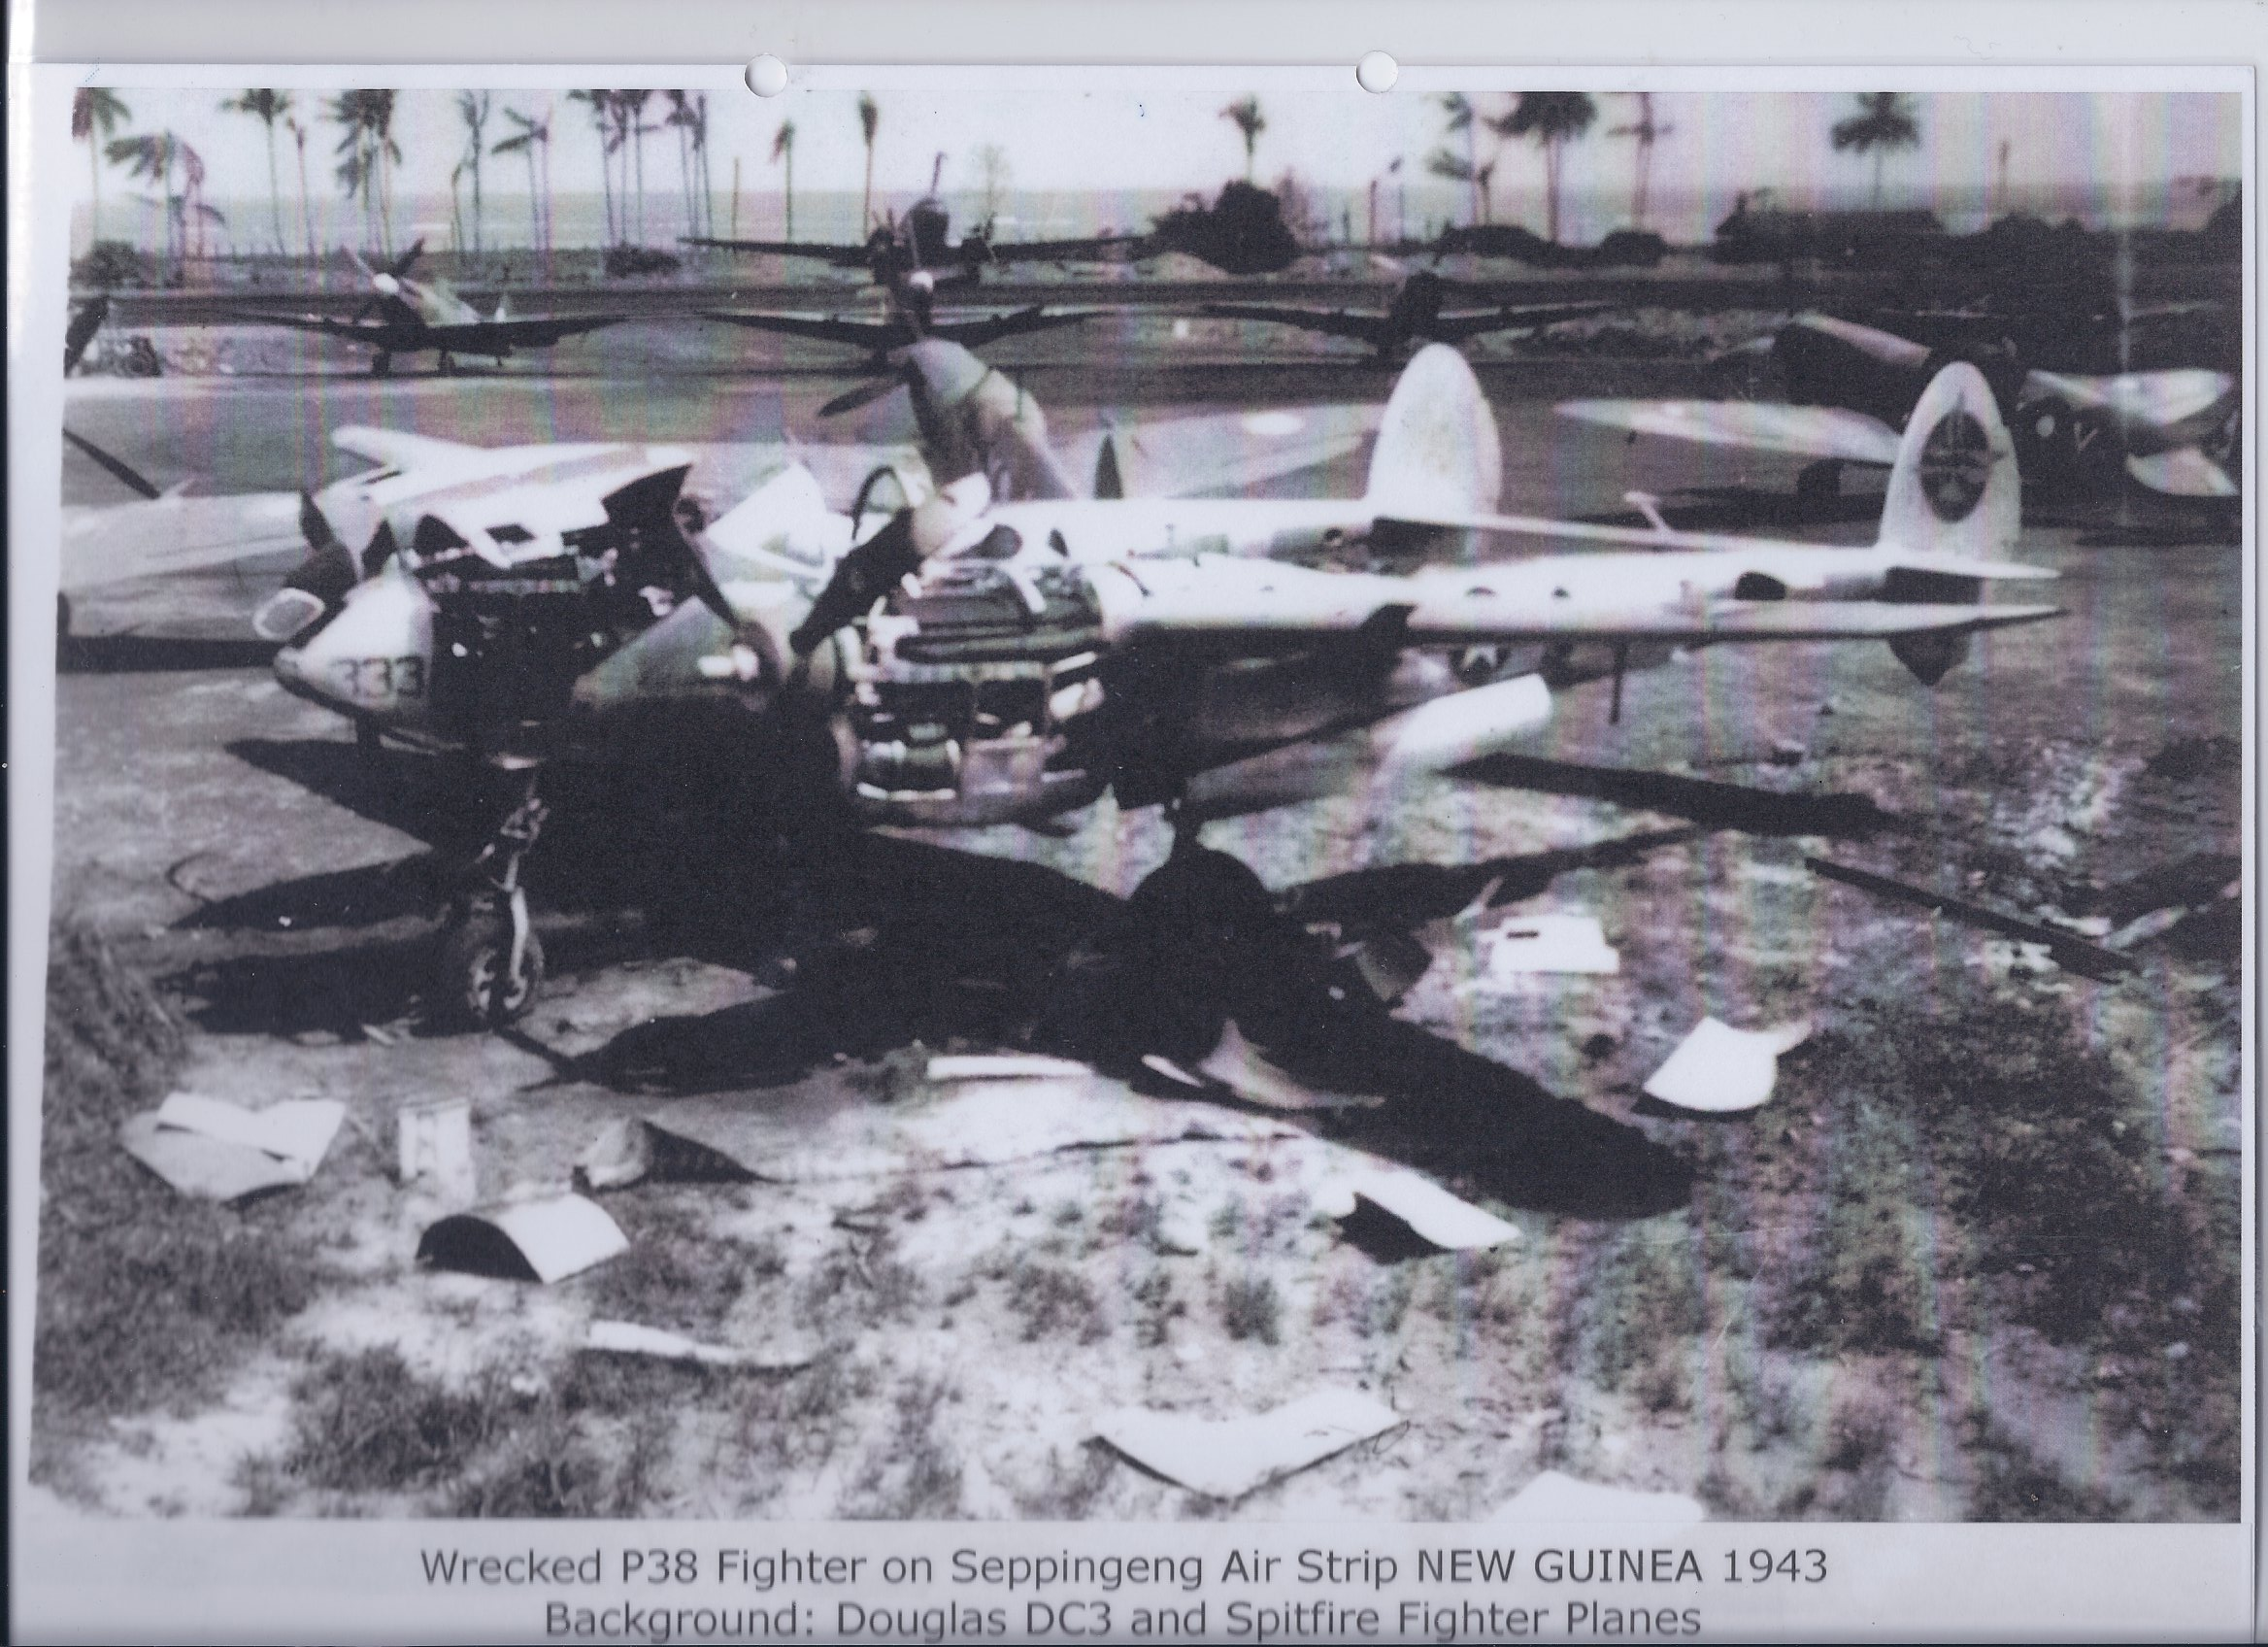 Wrecked P38 Fighter on Seppingeng Air Strip NEW GUINEA 1943. Background: Douglas DC3 and Spitfire Fighter Planes